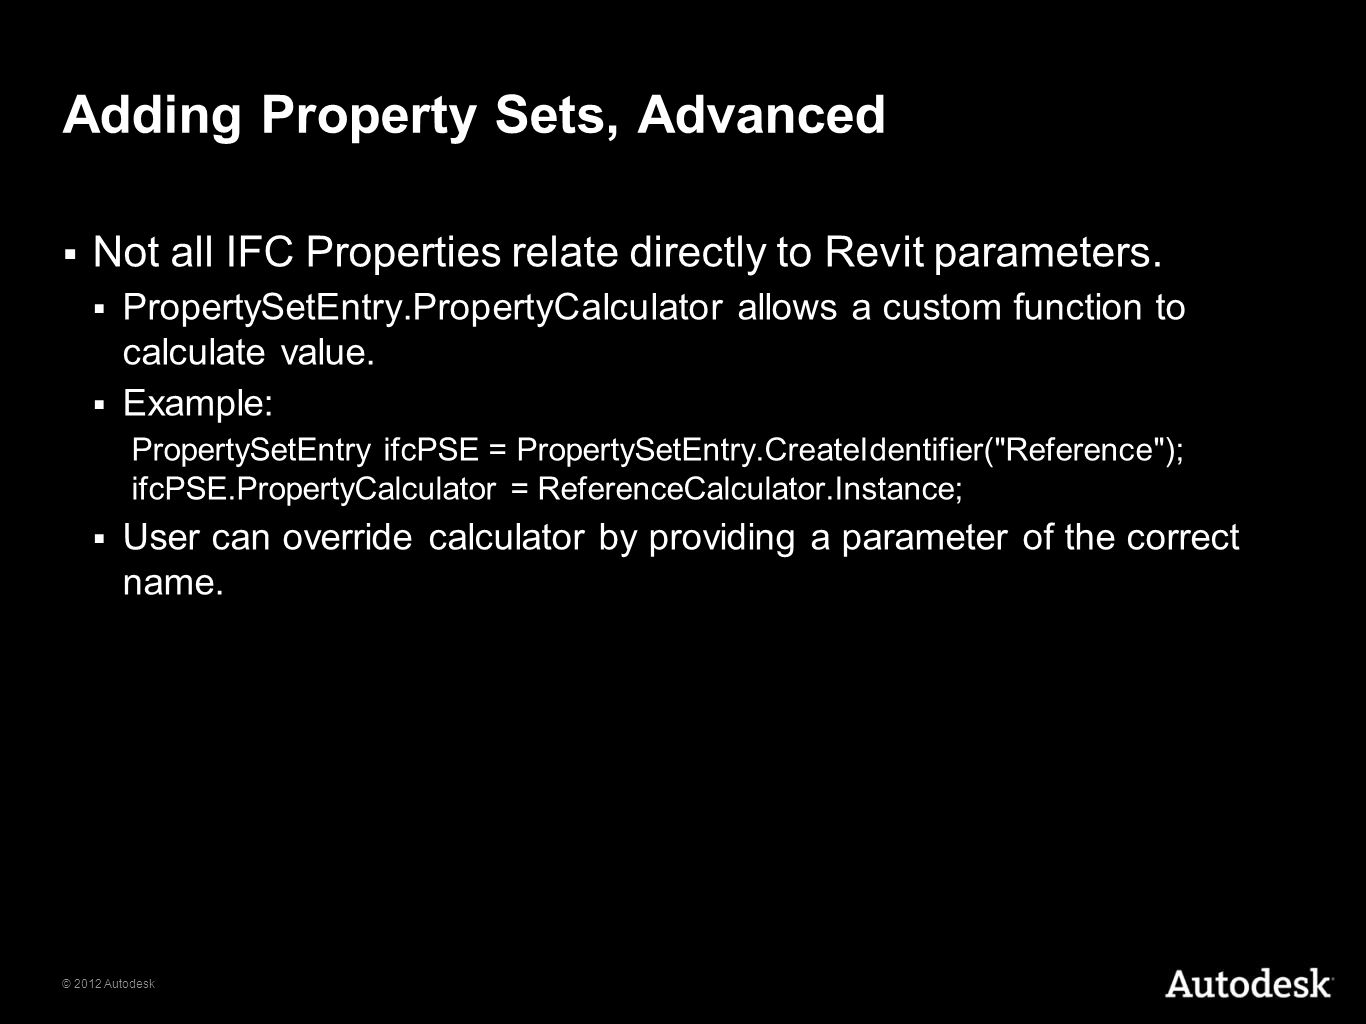 Adding Property Sets, Advanced